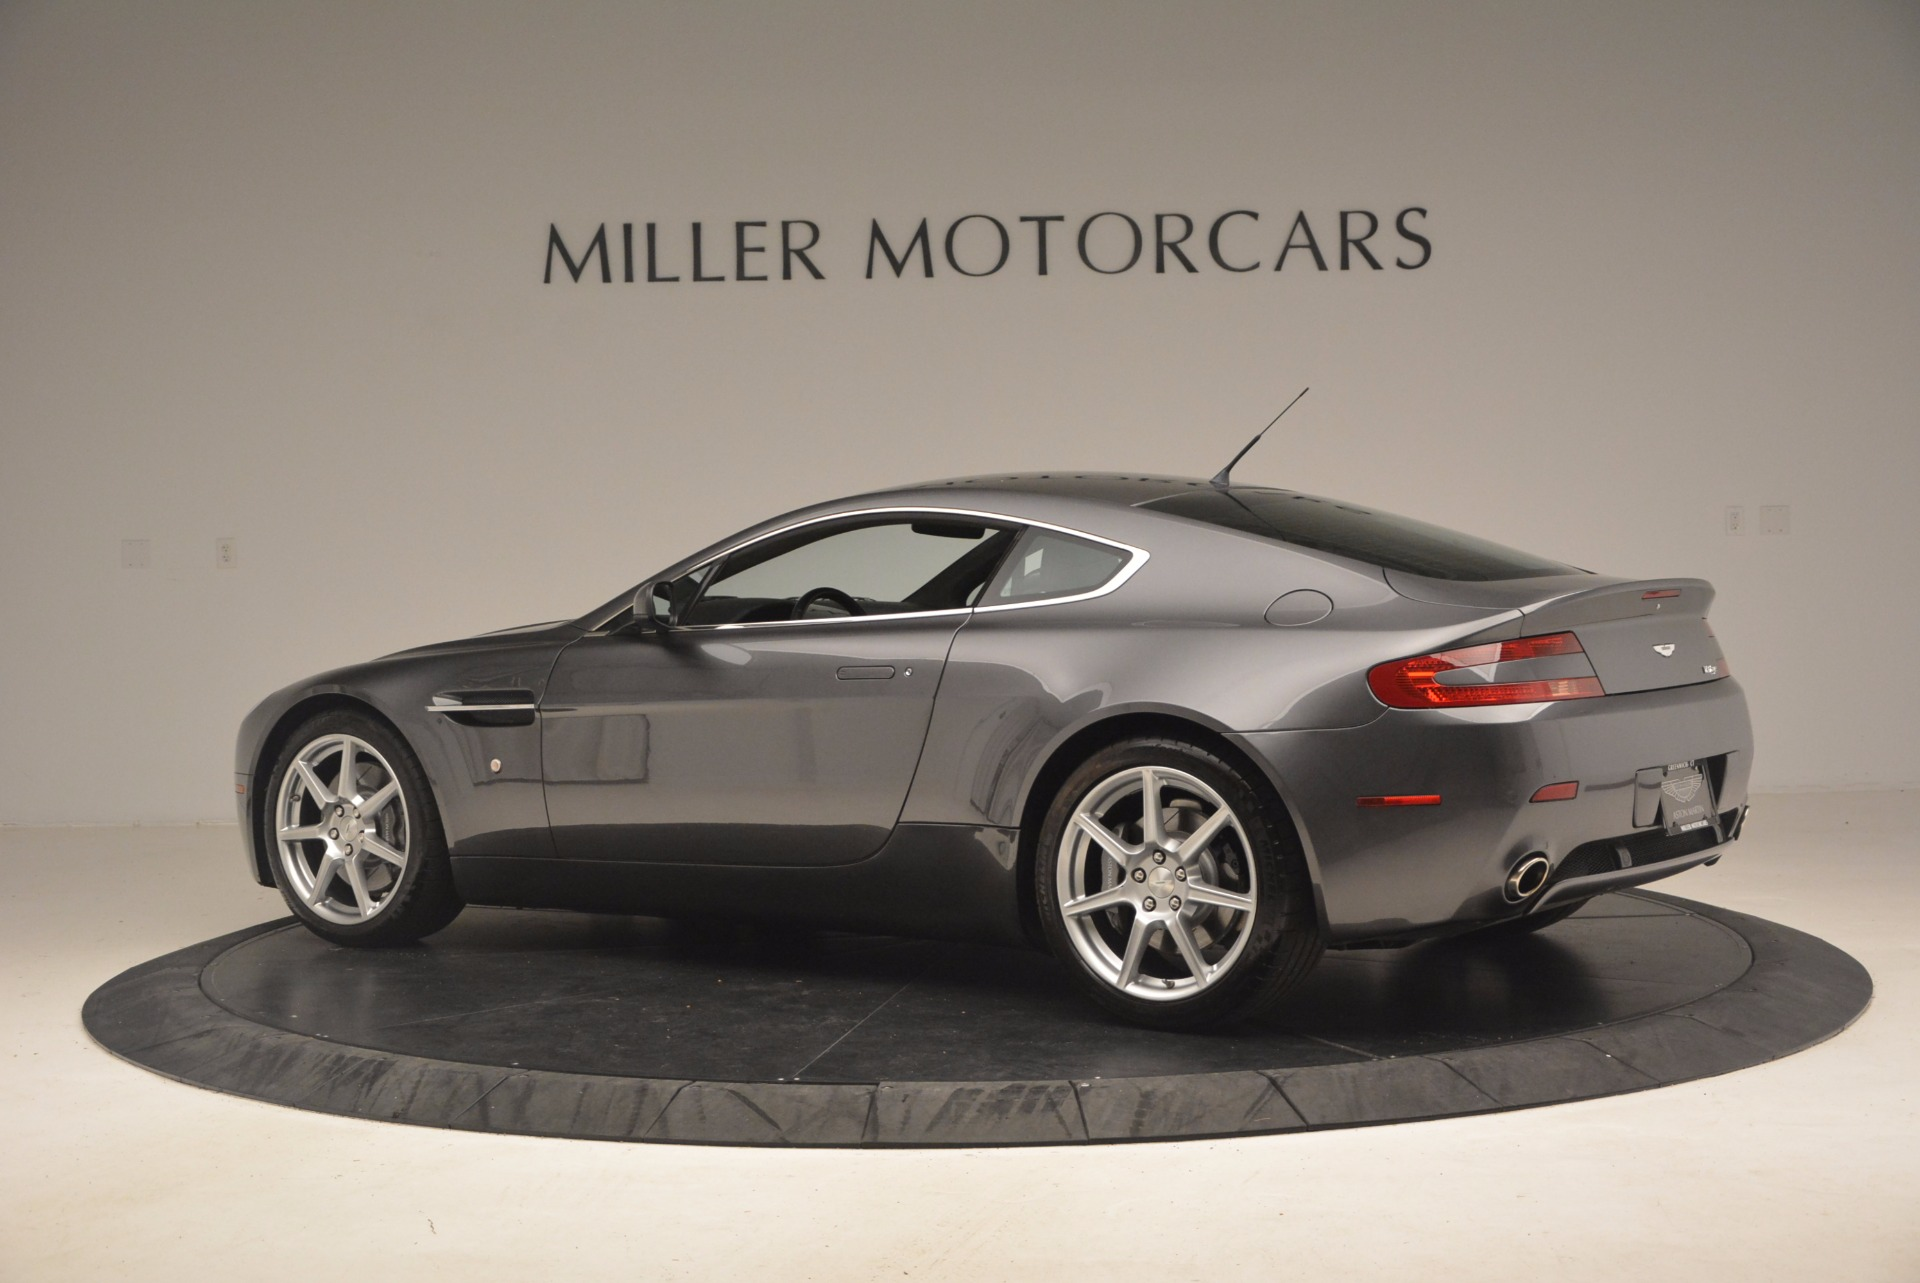 Used 2006 Aston Martin V8 Vantage Coupe  For Sale In Westport, CT 1180_p4